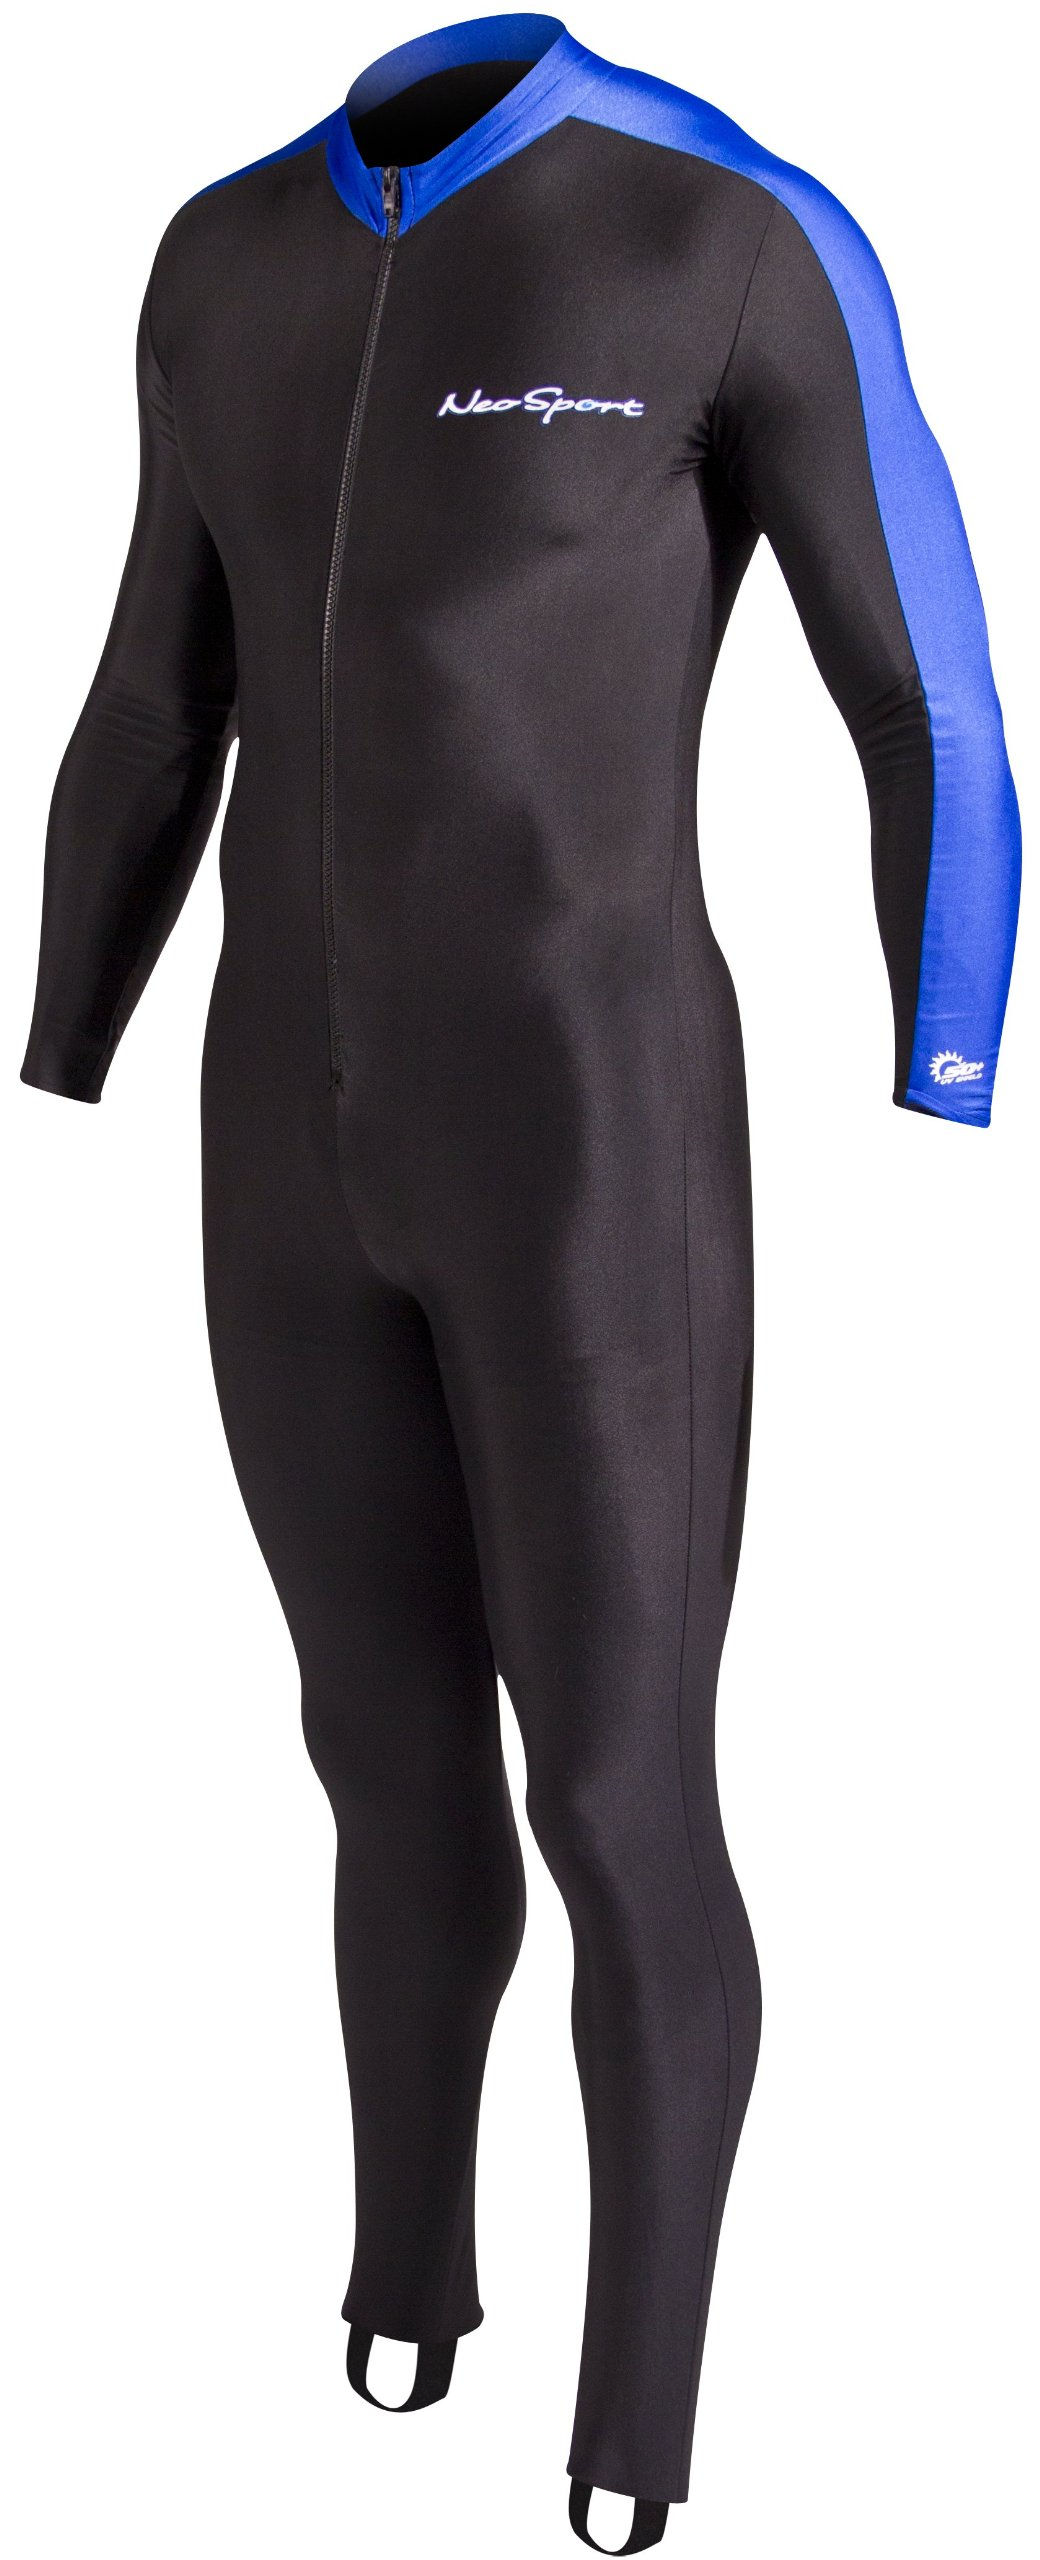 NeoSport Full Body Long Sleeve Lycra Sports Suit for Women and Men - Helps Protect Against UV rays and Skin Irritants - Great for Swimming, Snorkeling, Scuba Diving and All Watersports, by Neo-Sport